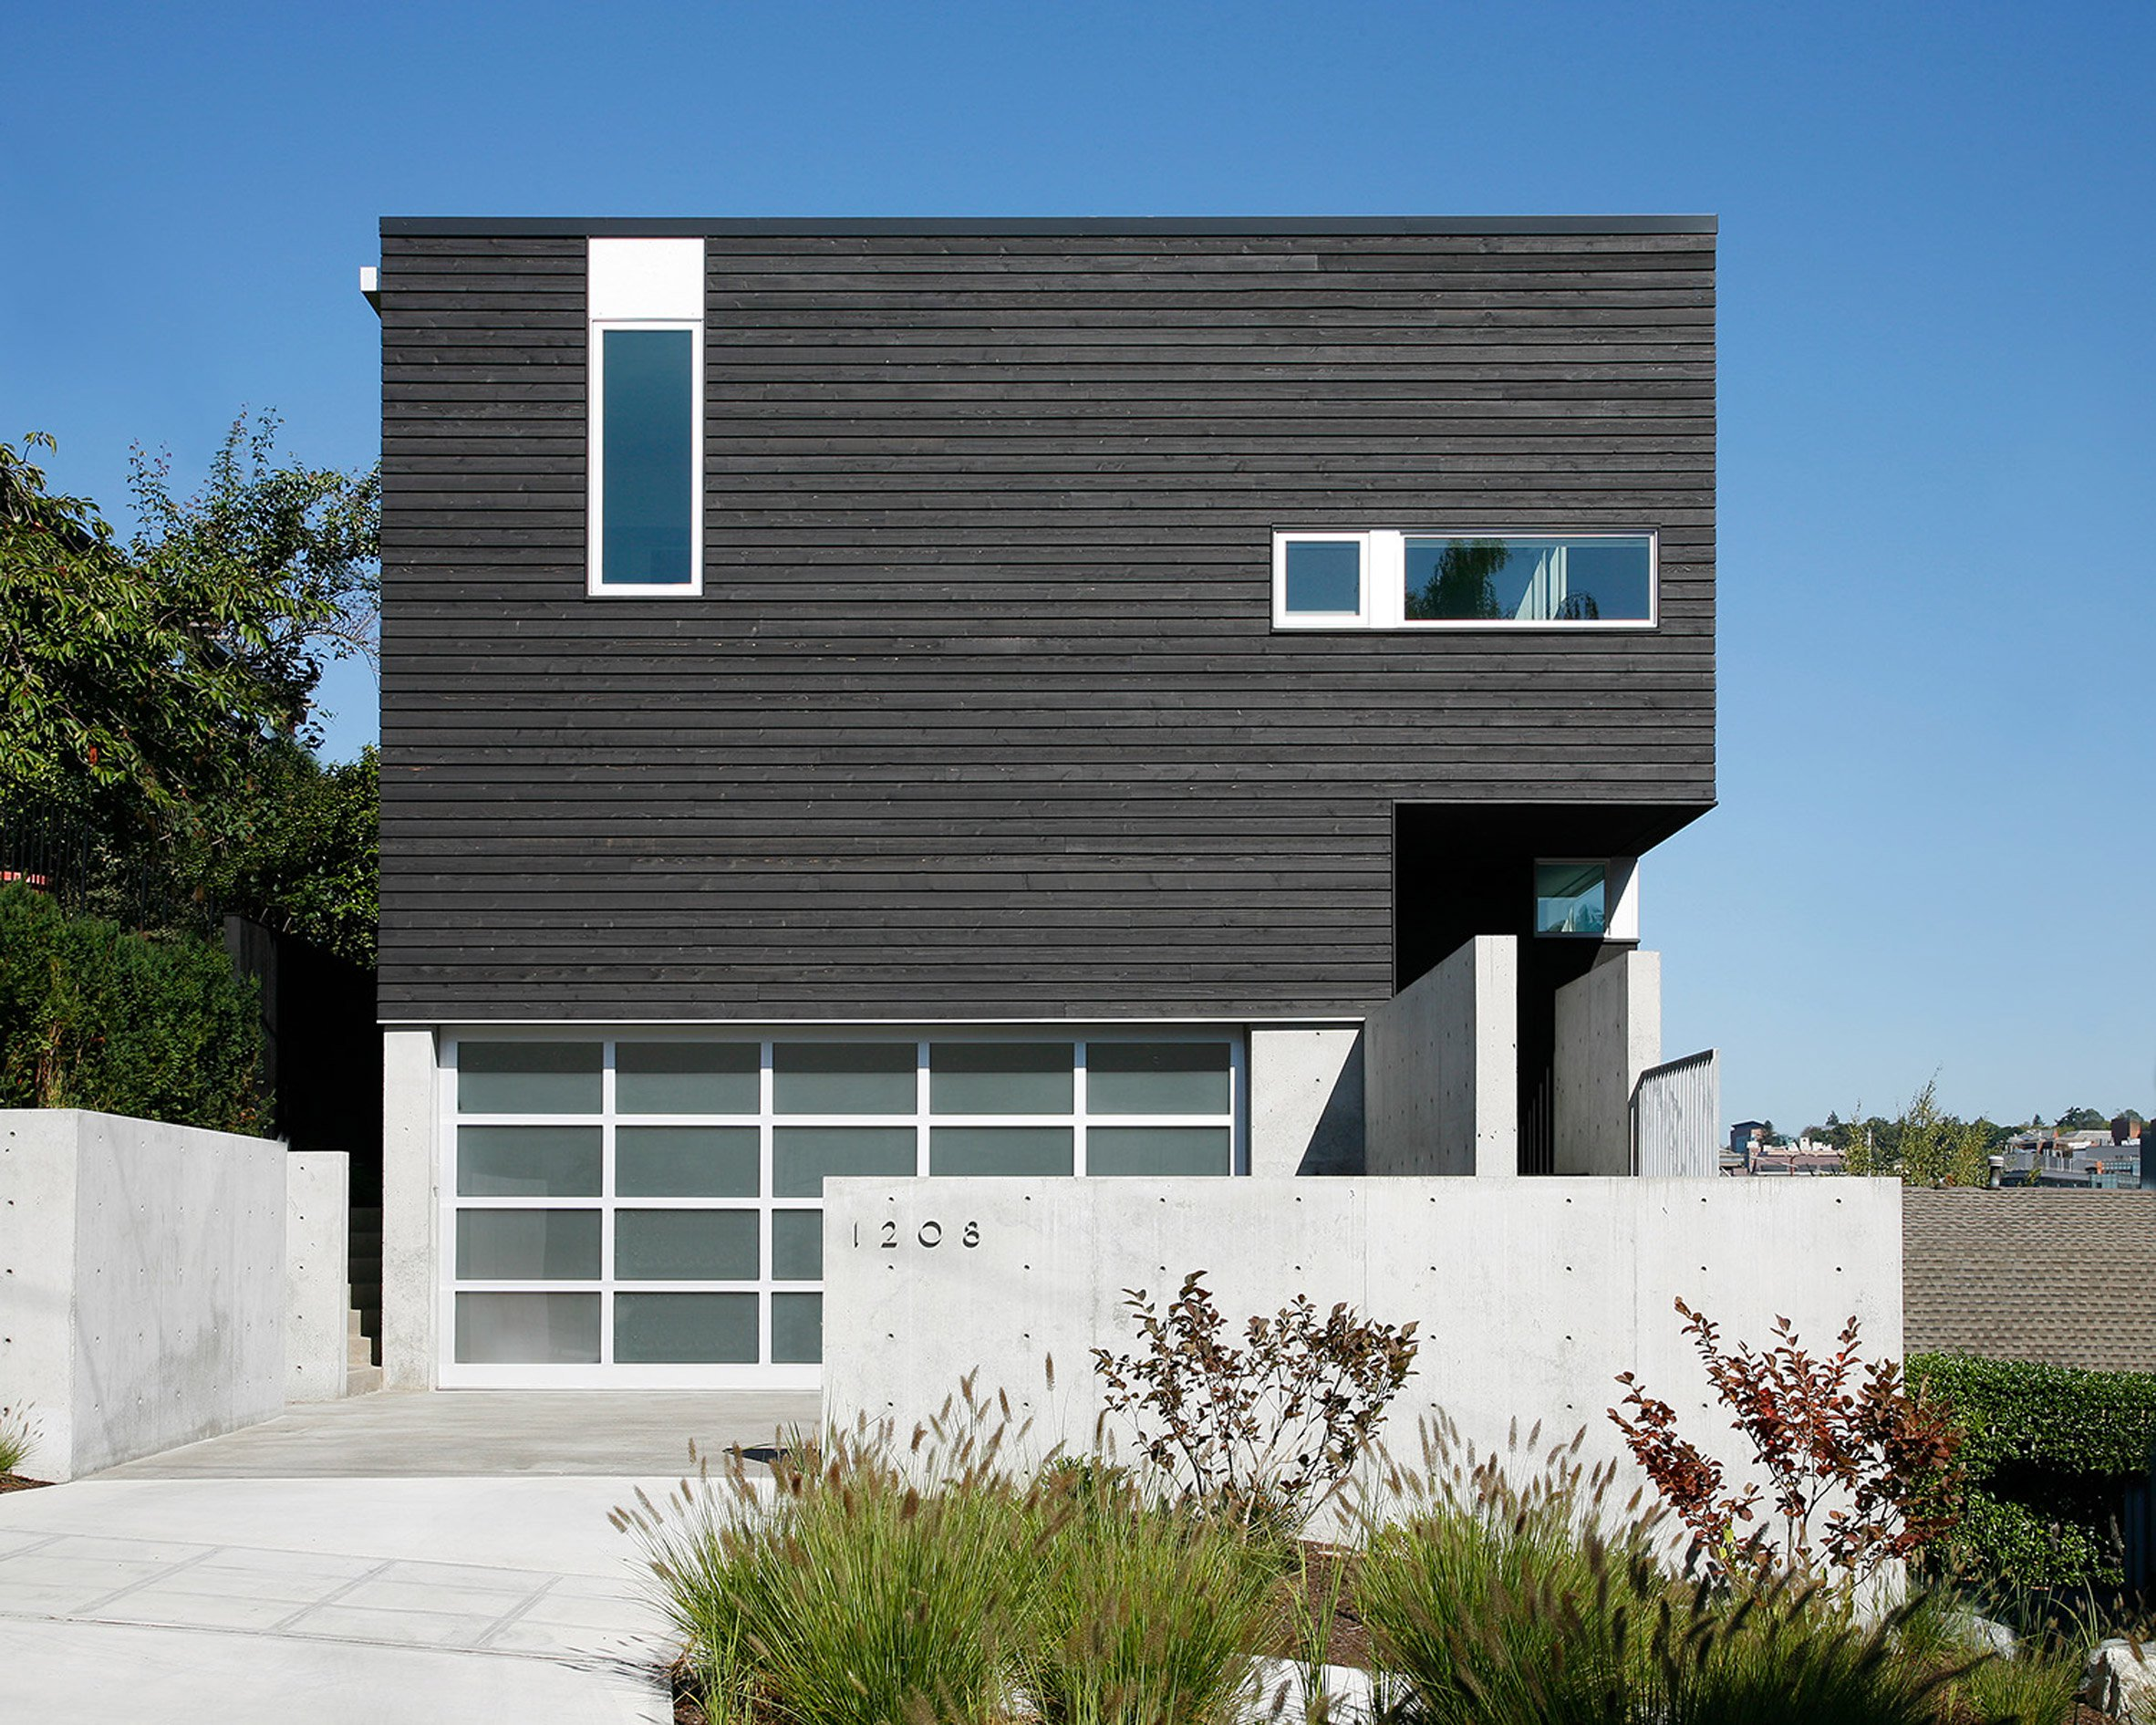 Robert Hutchison's Cantilever House projects towards Seattle harbour